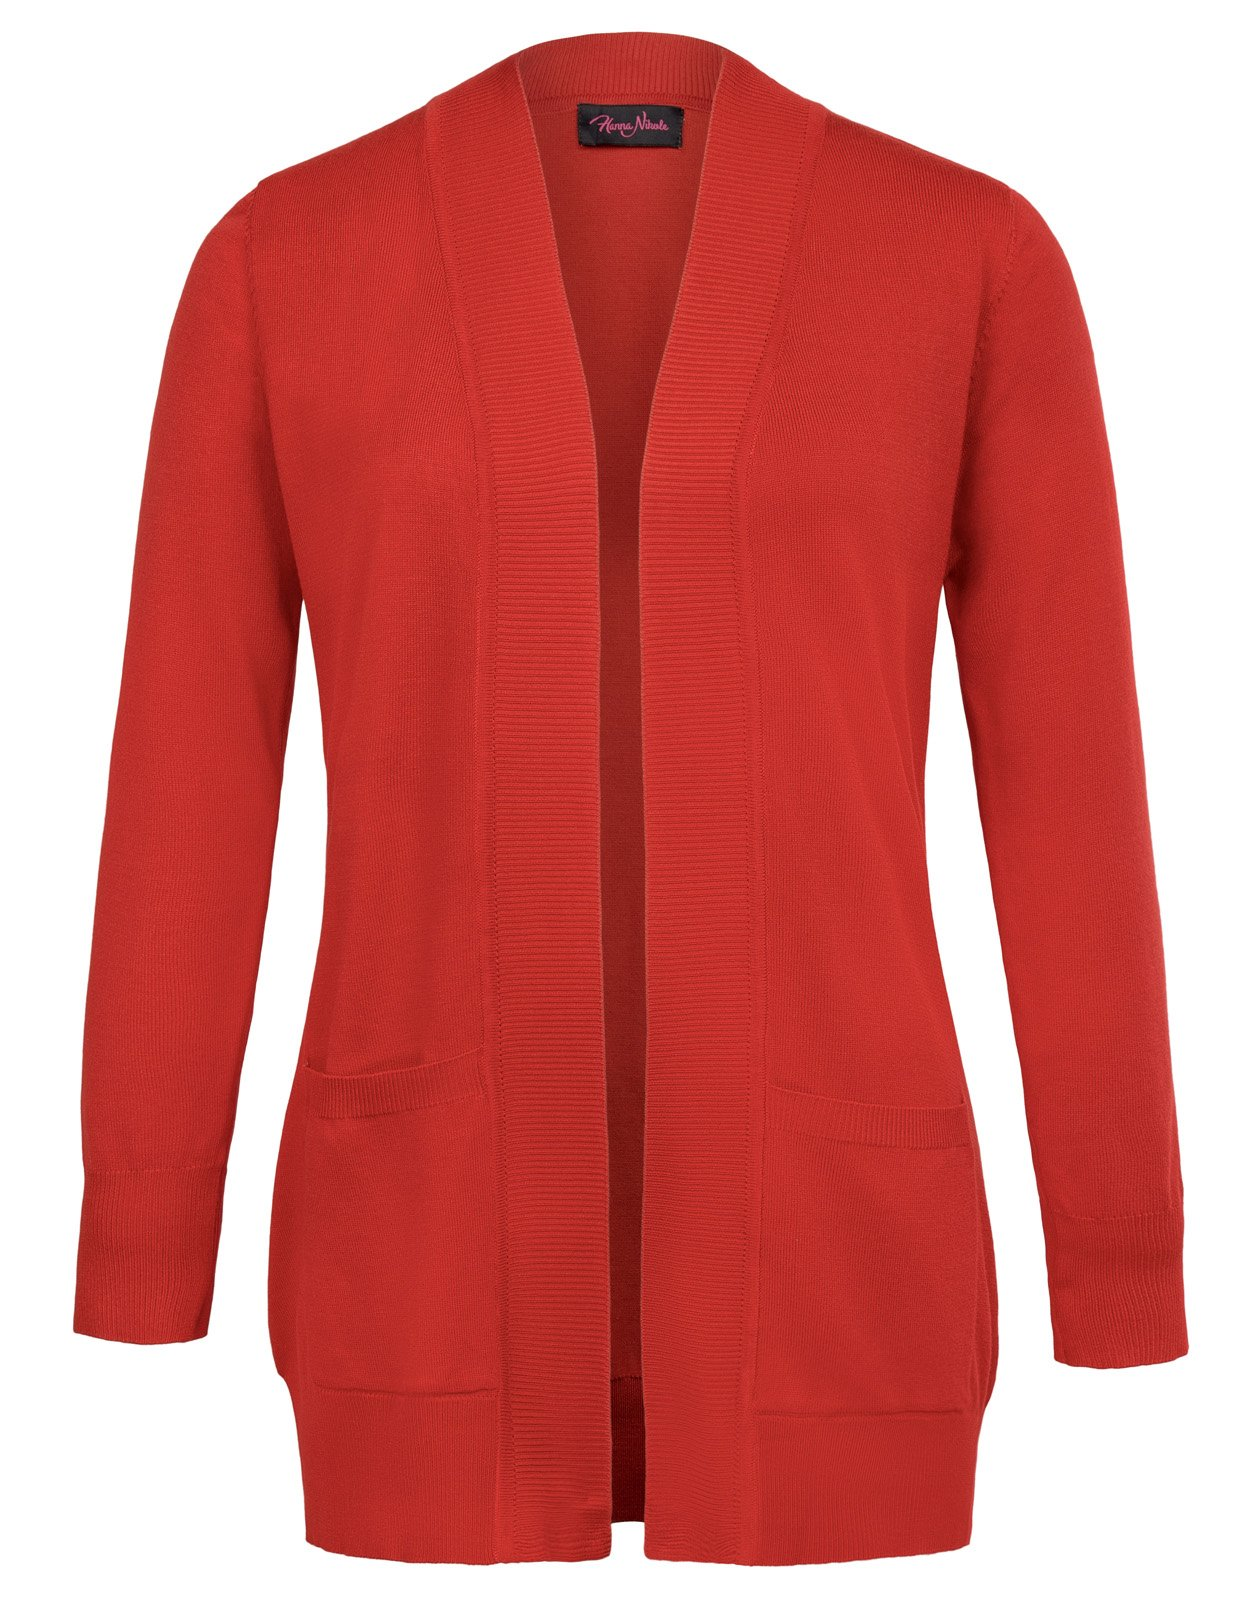 Hanna Nikole Women's Long Sleeve Open Front Plus Size Loose Fit Cardigan With Pocket Size 2X Red